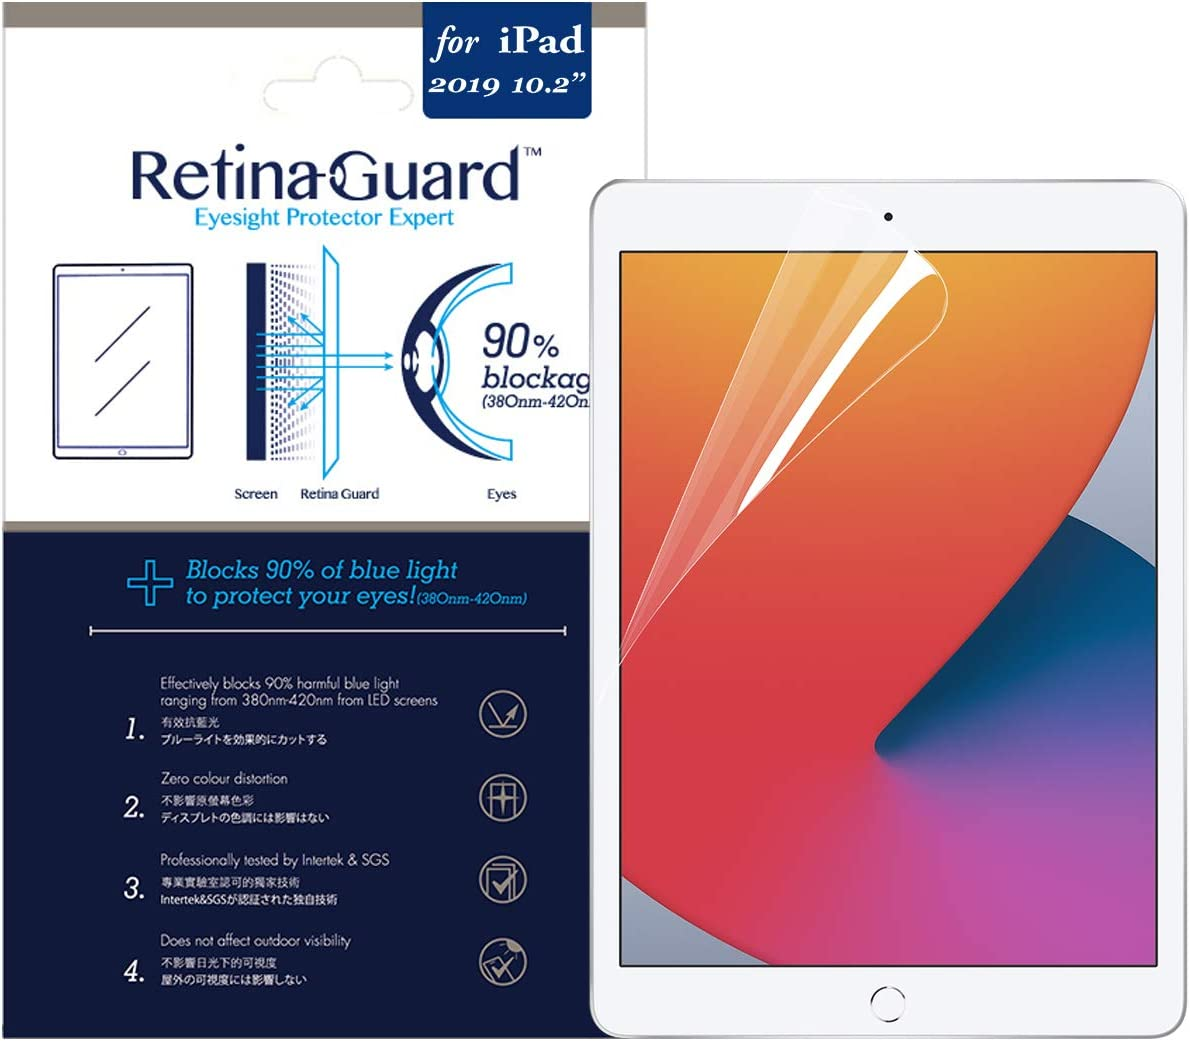 RetinaGuard 2019 iPad 10.2 Inch Anti Blue Light Screen Protector (Transparent), SGS and Intertek Tested, Blocks Excessive Harmful Blue Light, Reduce Eye Fatigue and Eye Strain